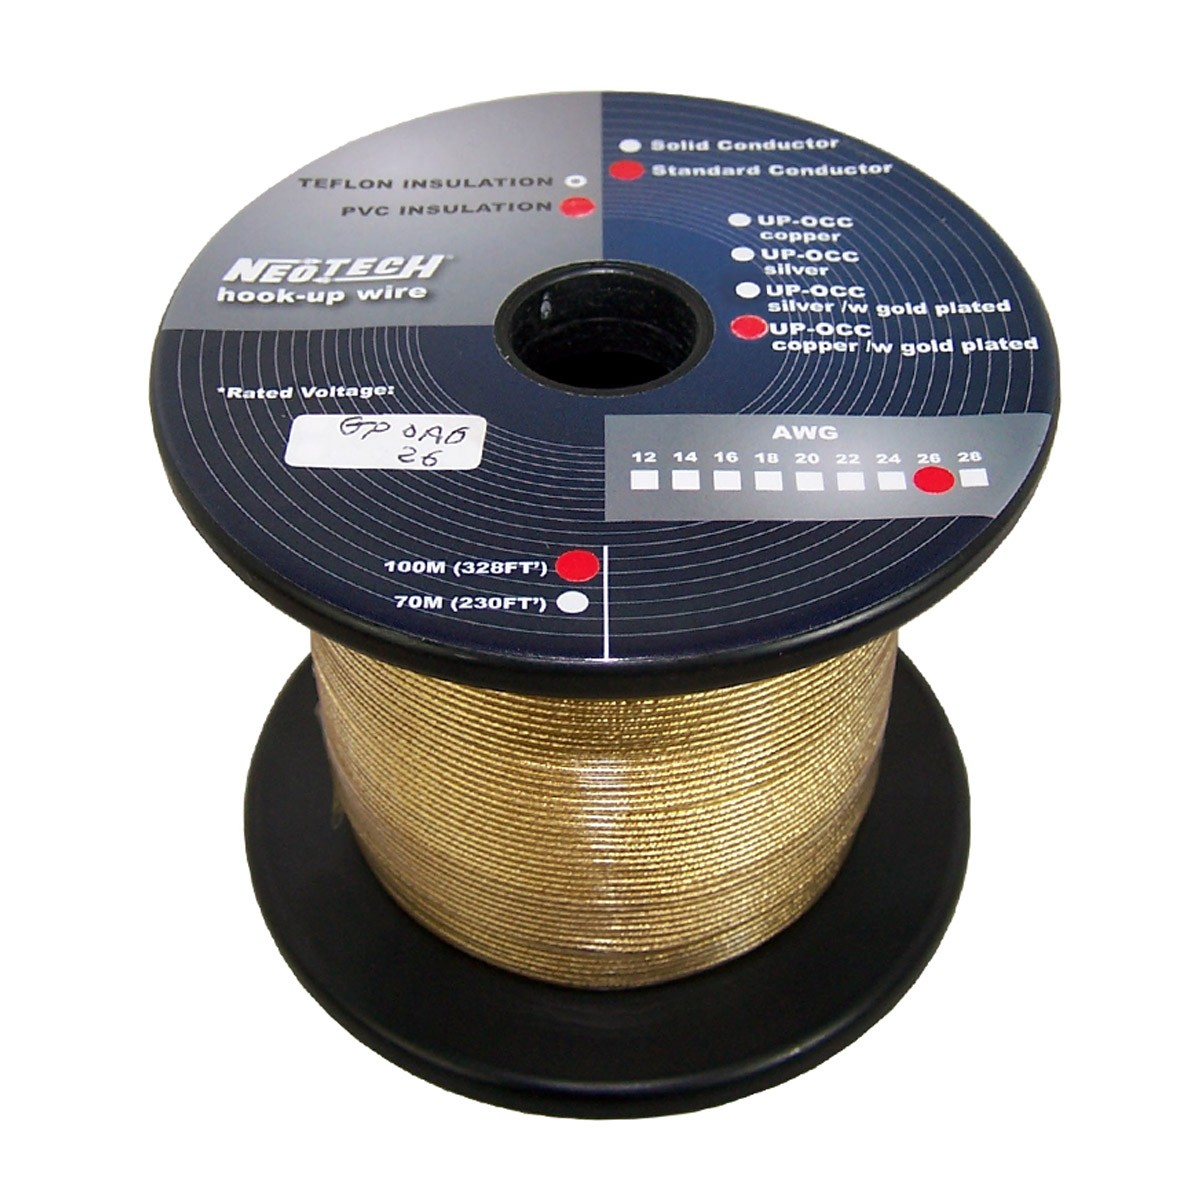 NEOTECH GP-OCG Wiring Cable Gold Plated UP-OCC Copper 0.205mm²